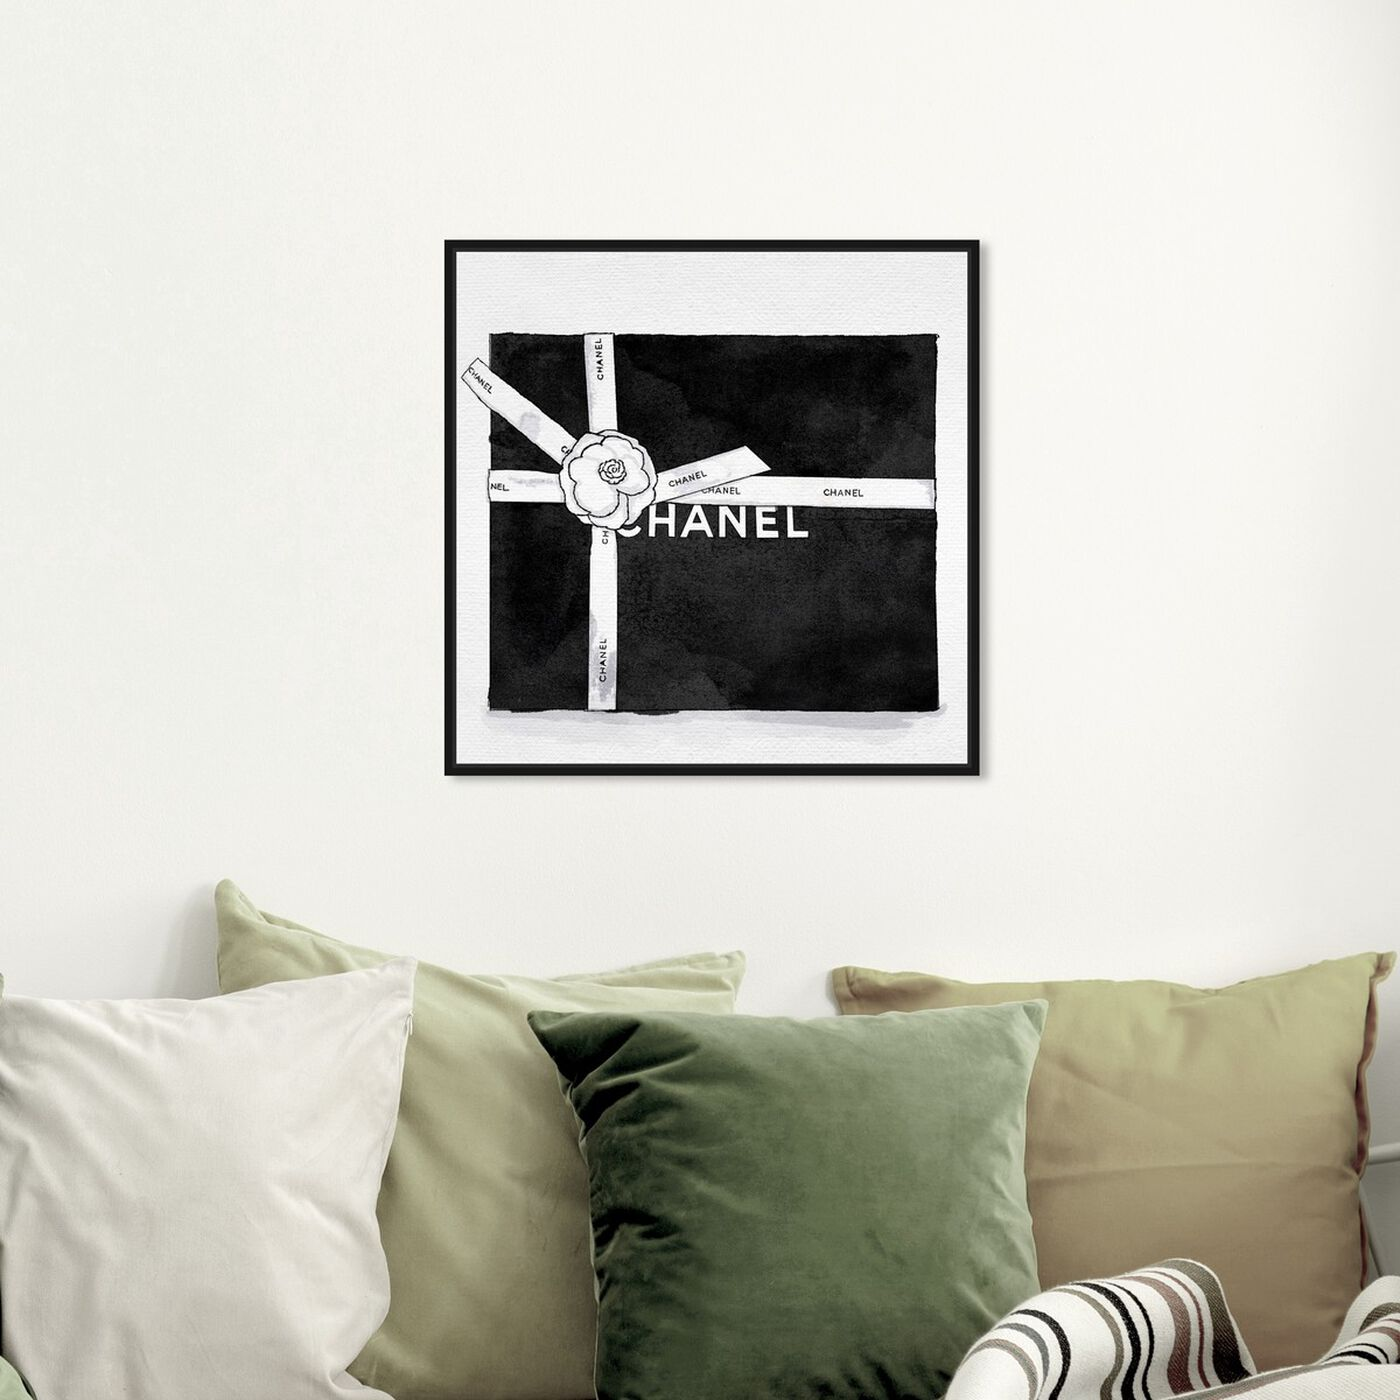 Hanging view of Fashionable Gift I featuring fashion and glam and lifestyle art.